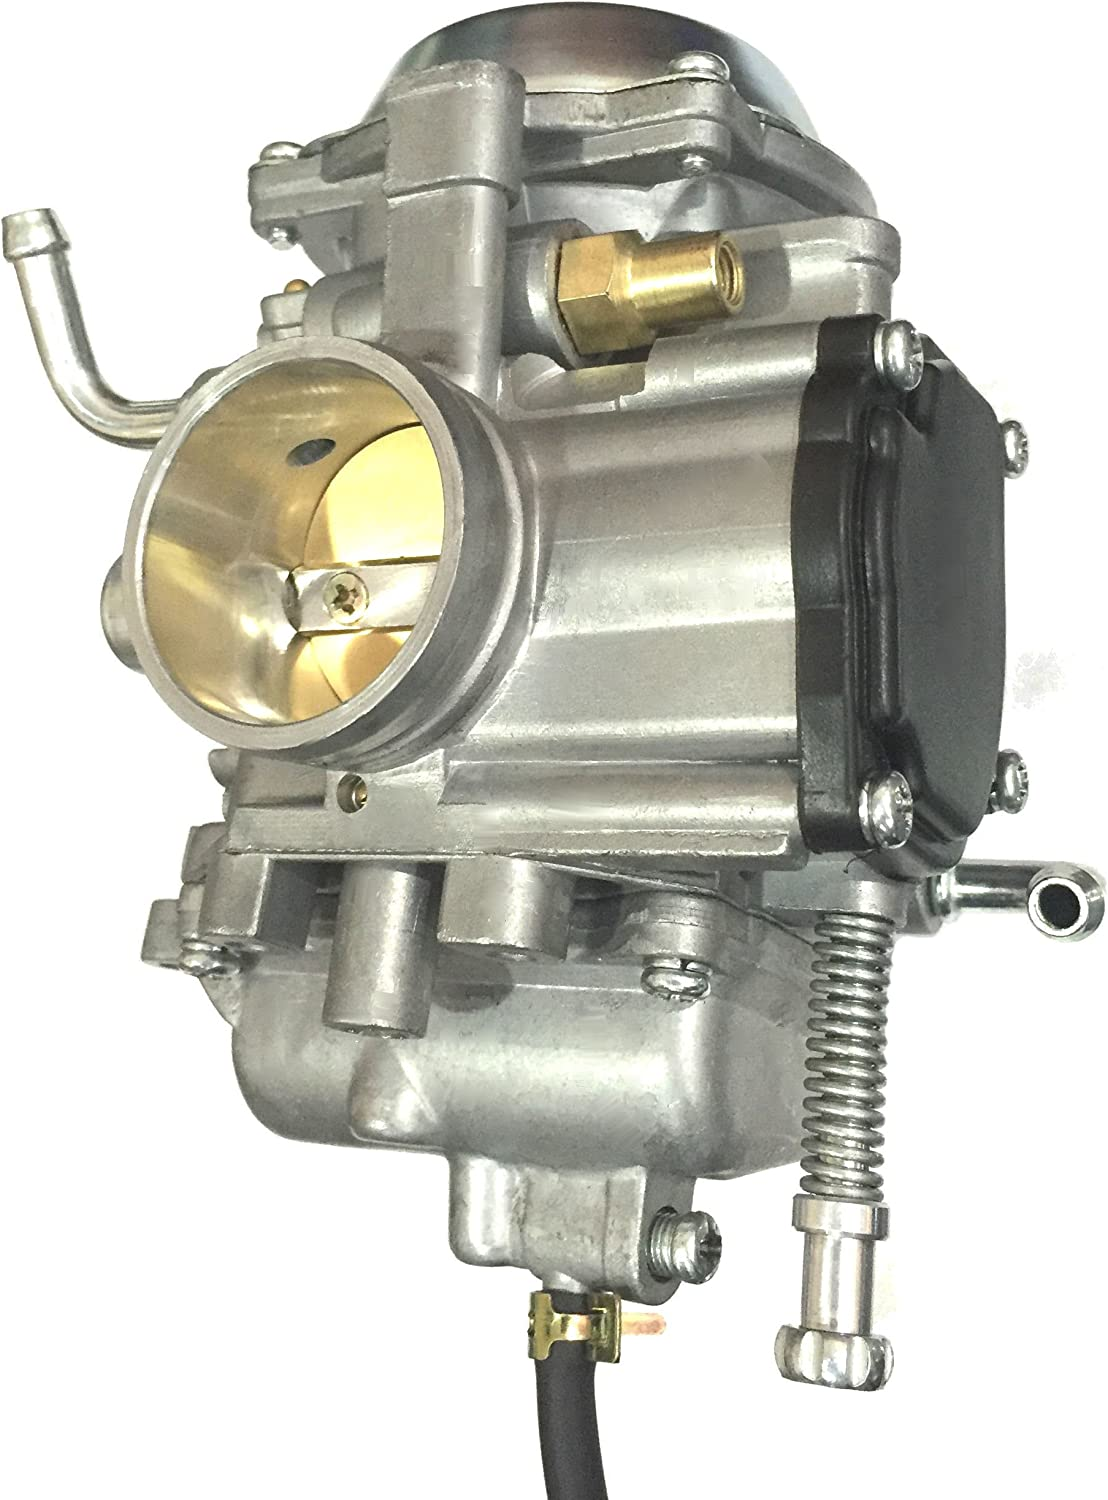 Polaris Magnum 500 Carburetor 4x4 2x4 Atv Quad Carb 1999-2003